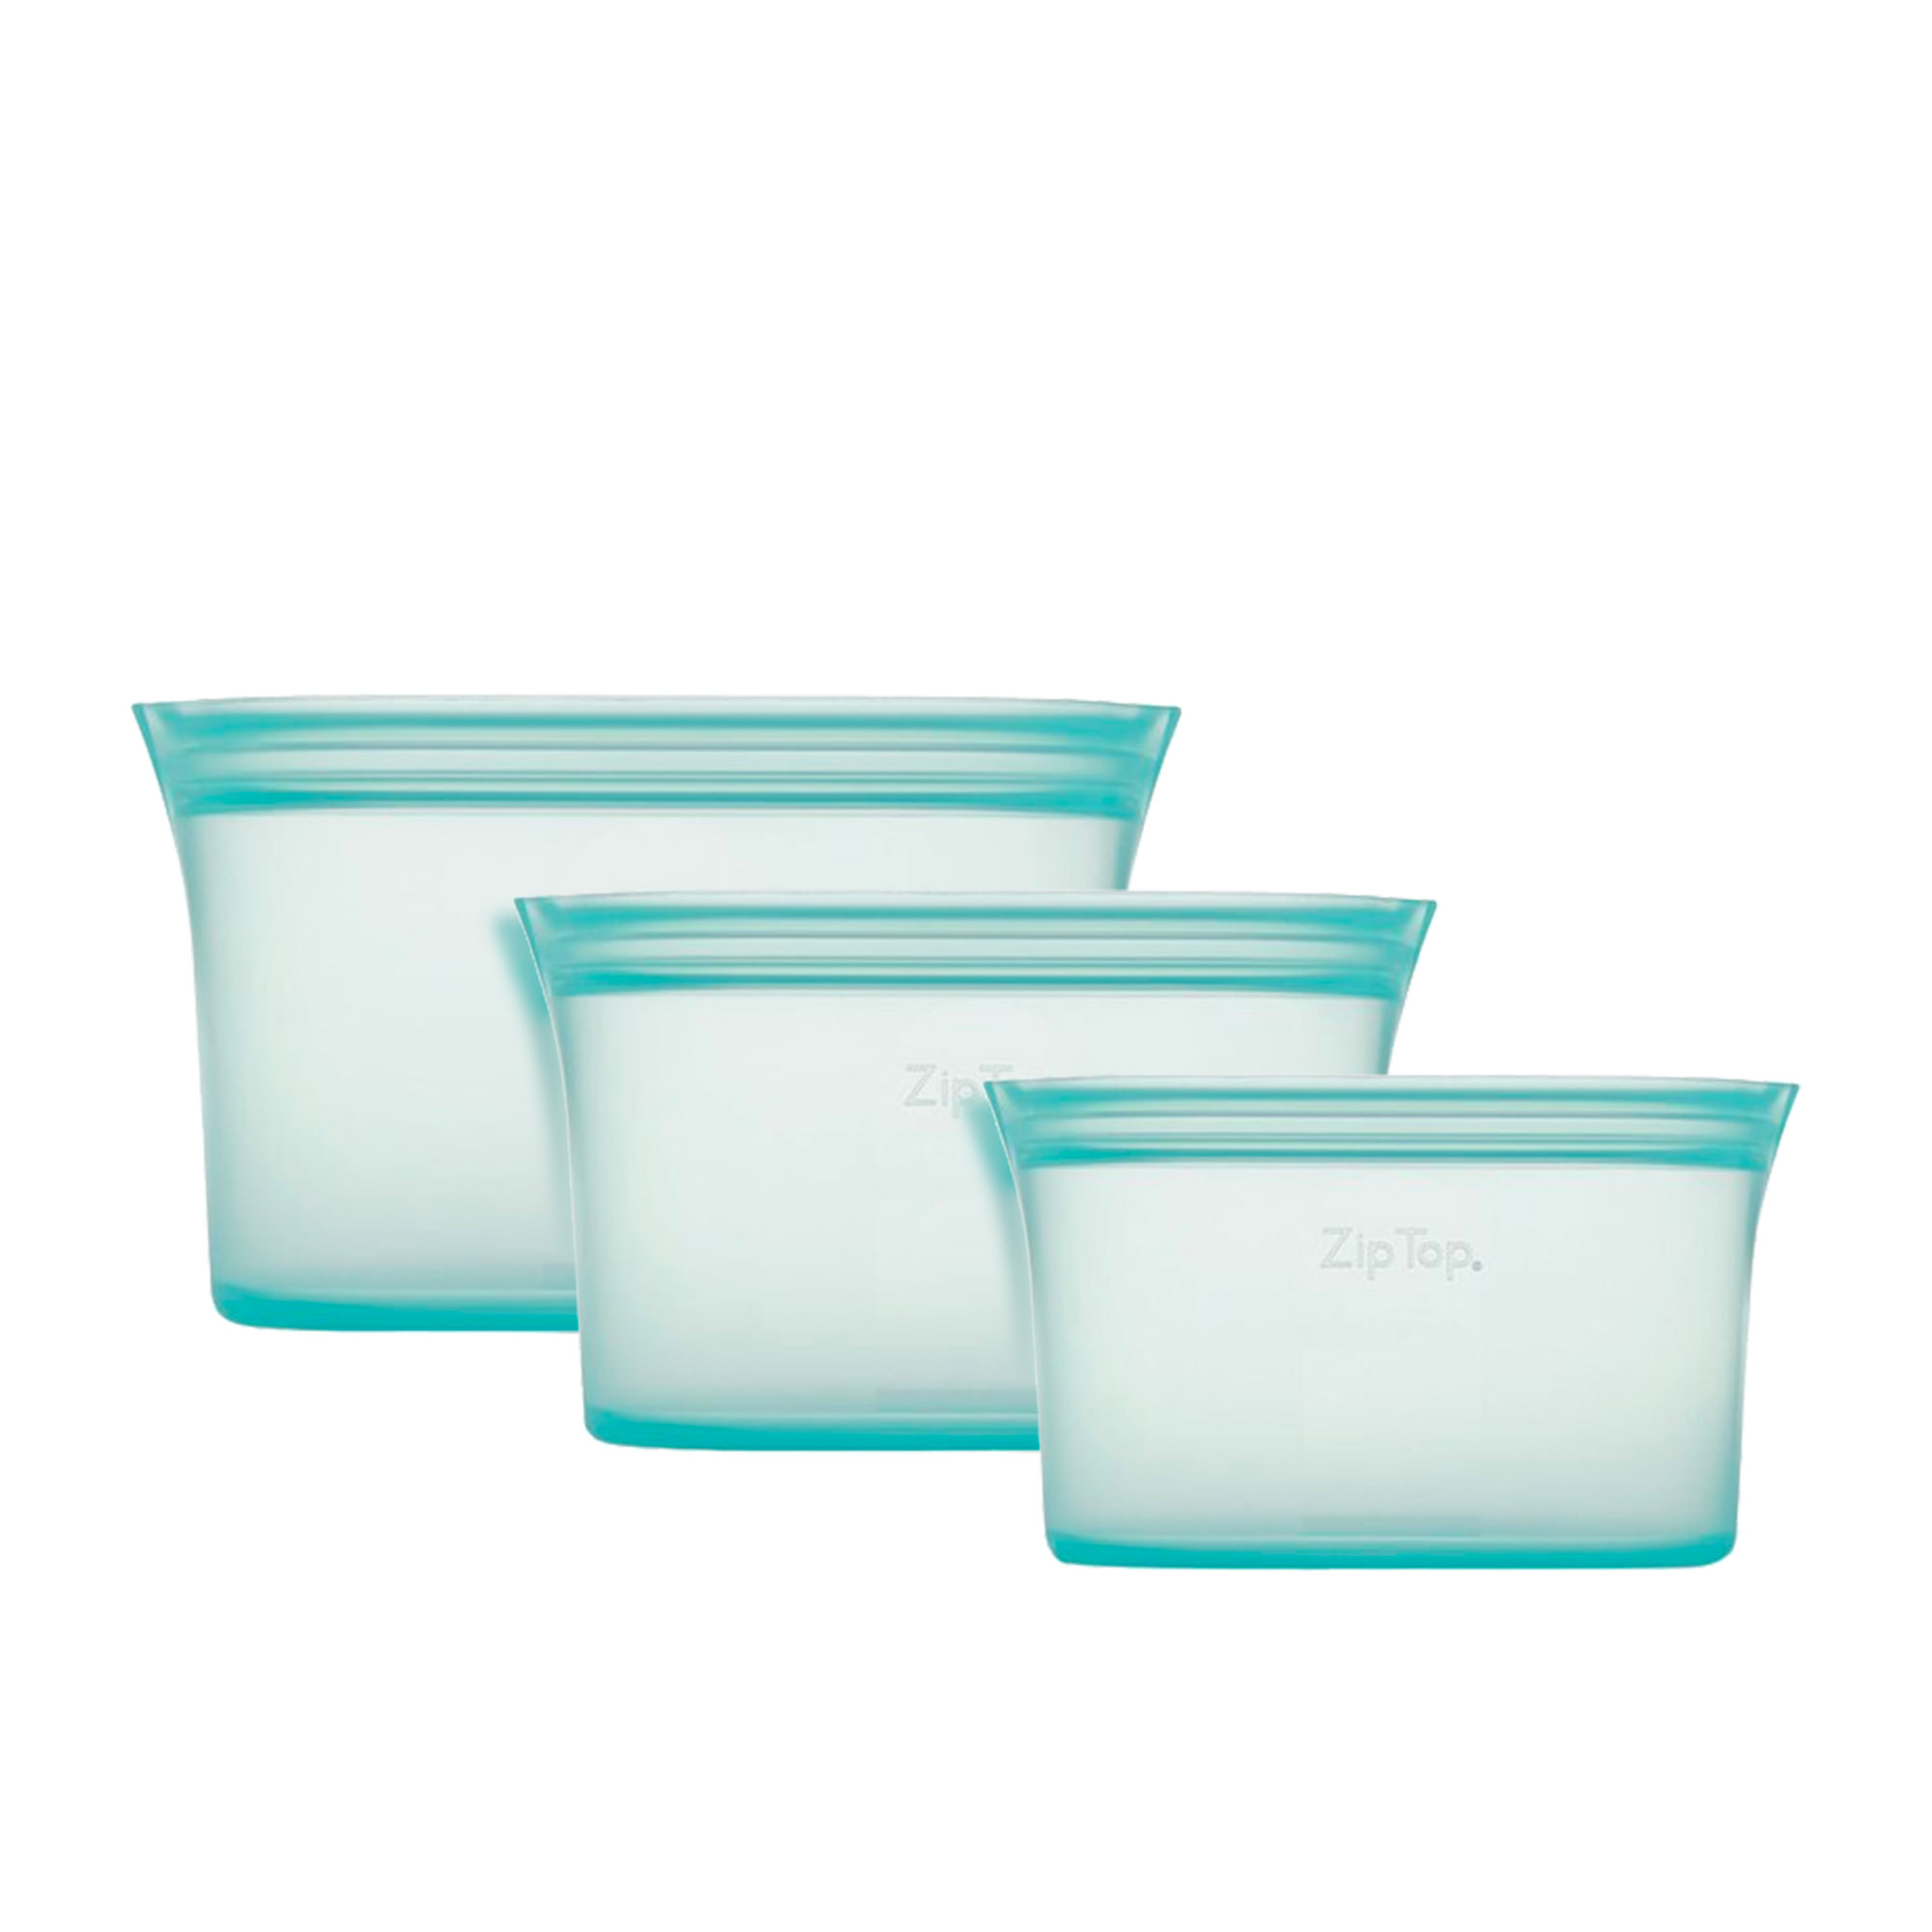 Zip Top 3pc Platinum Silicone Dish Container Set Teal